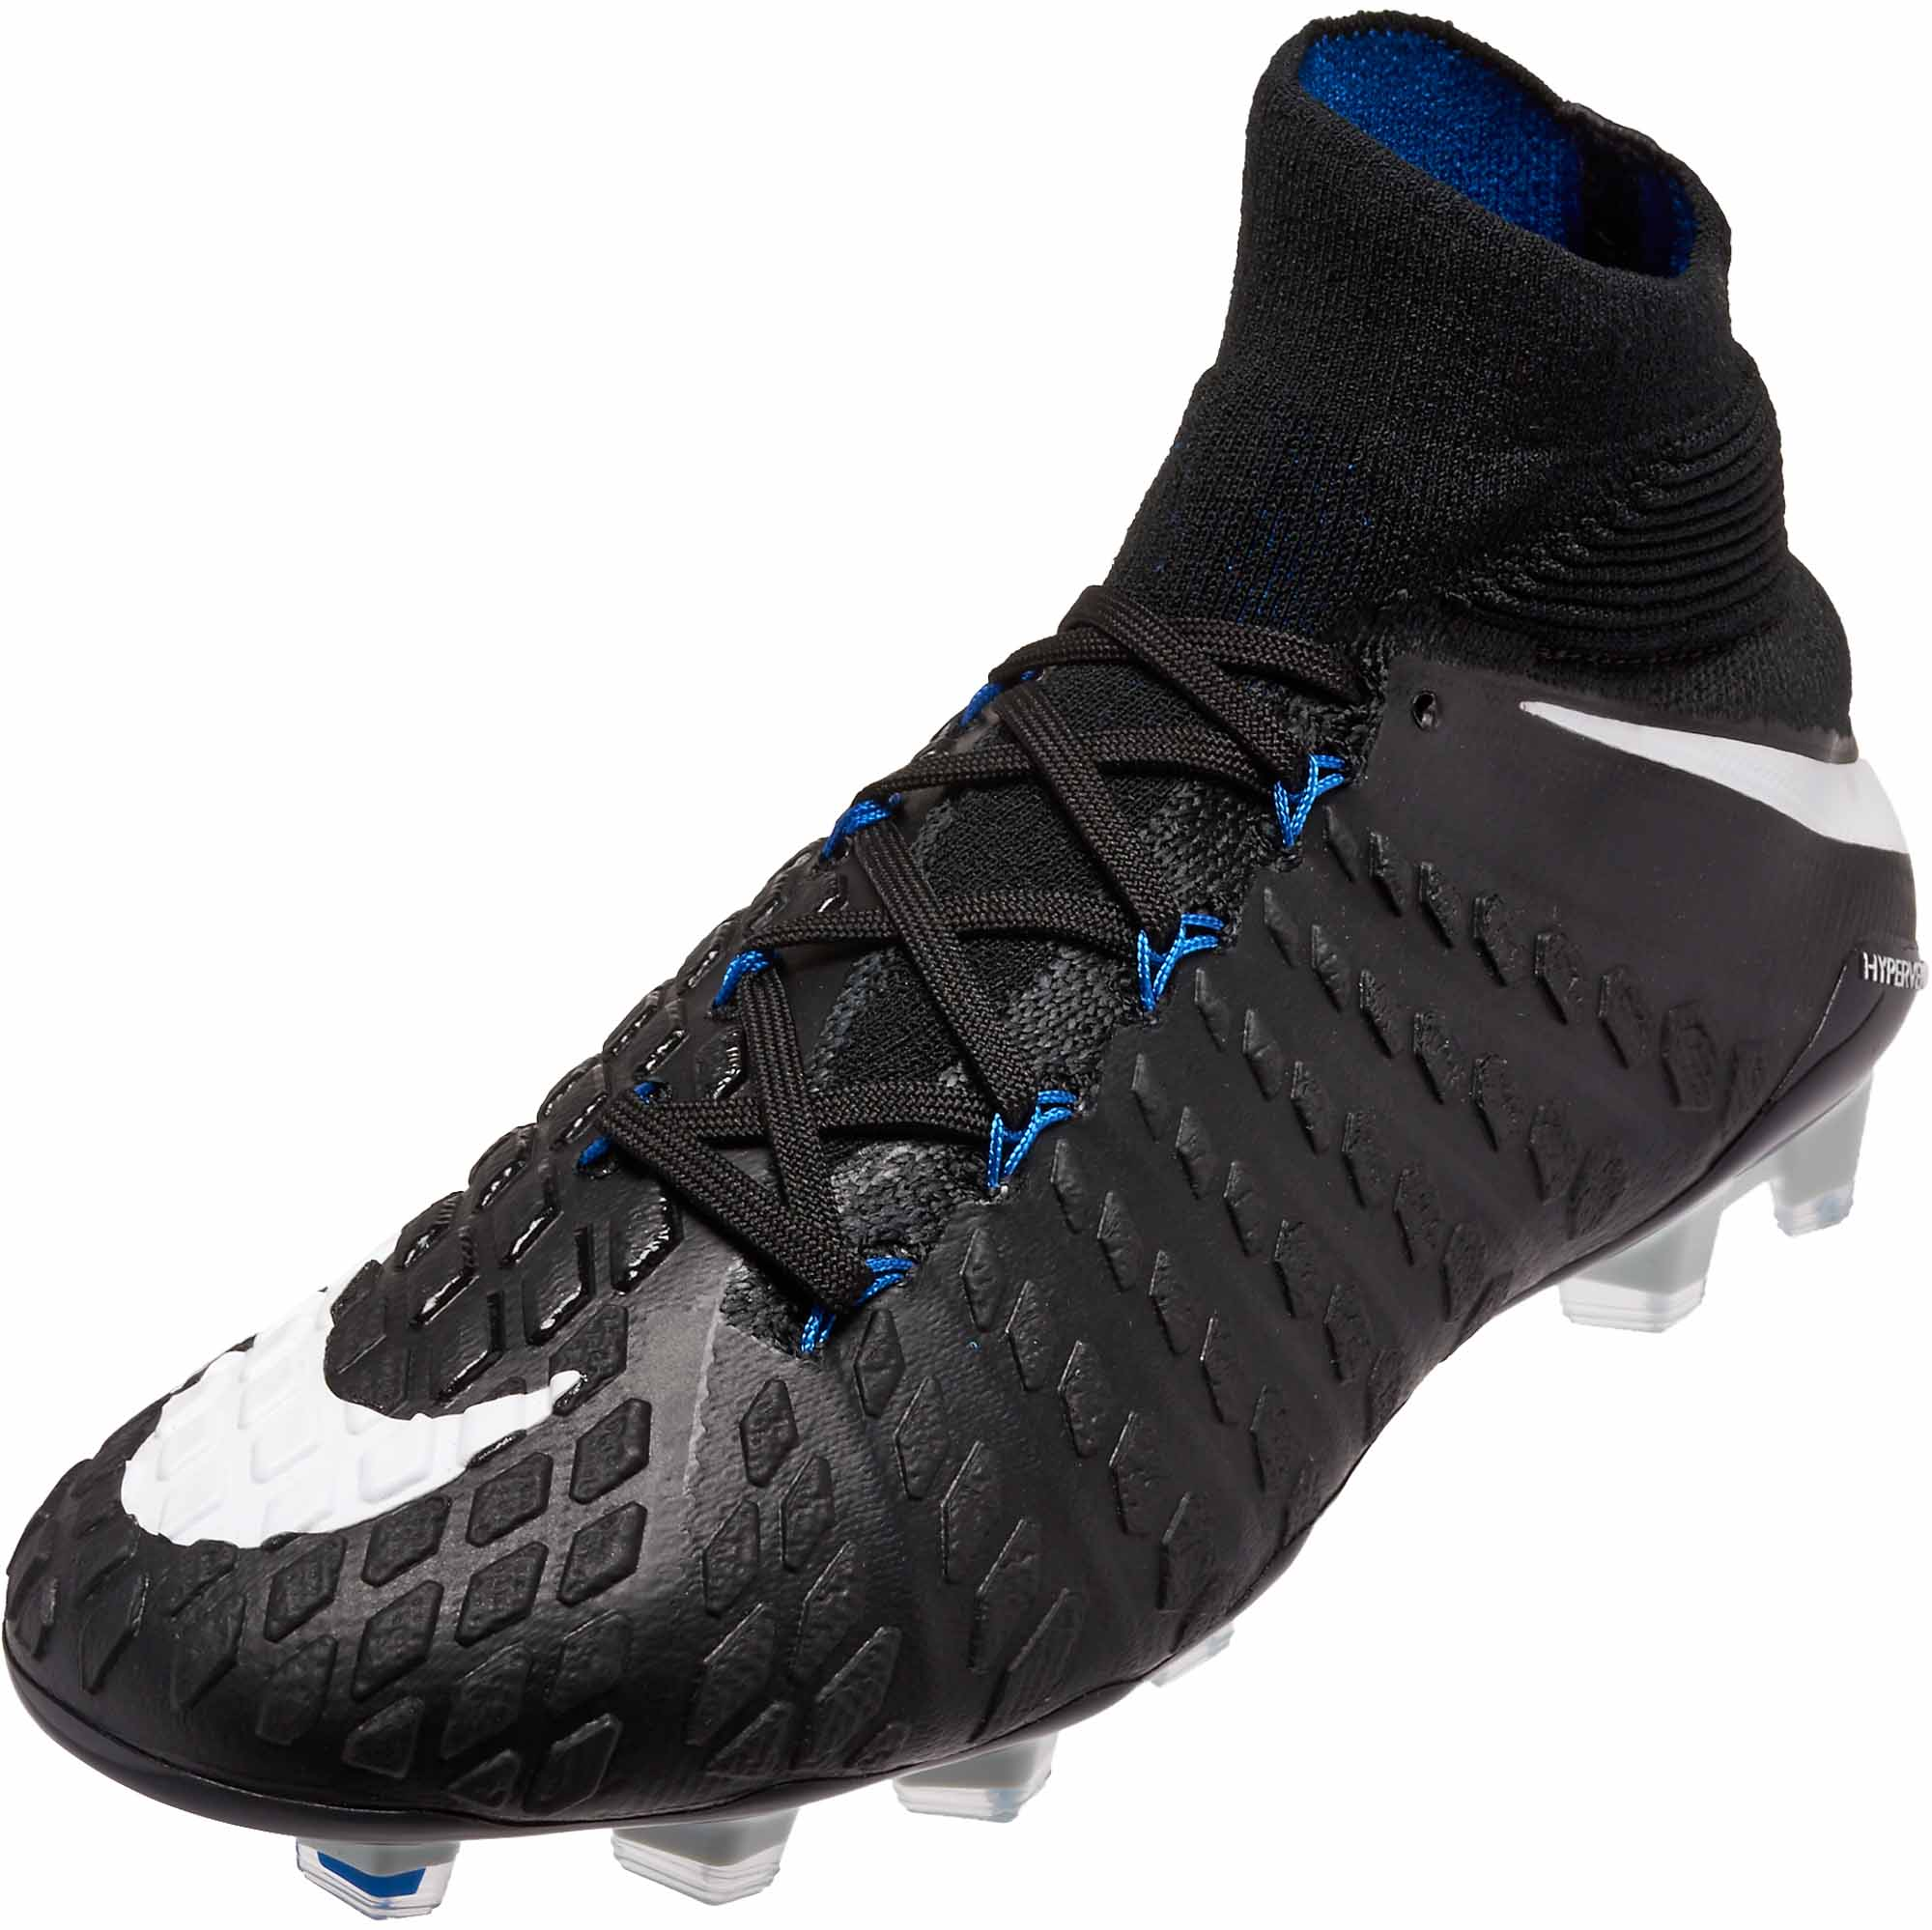 408a0ba39de Nike Hypervenom Phantom III DF FG - Phantom III Cleats